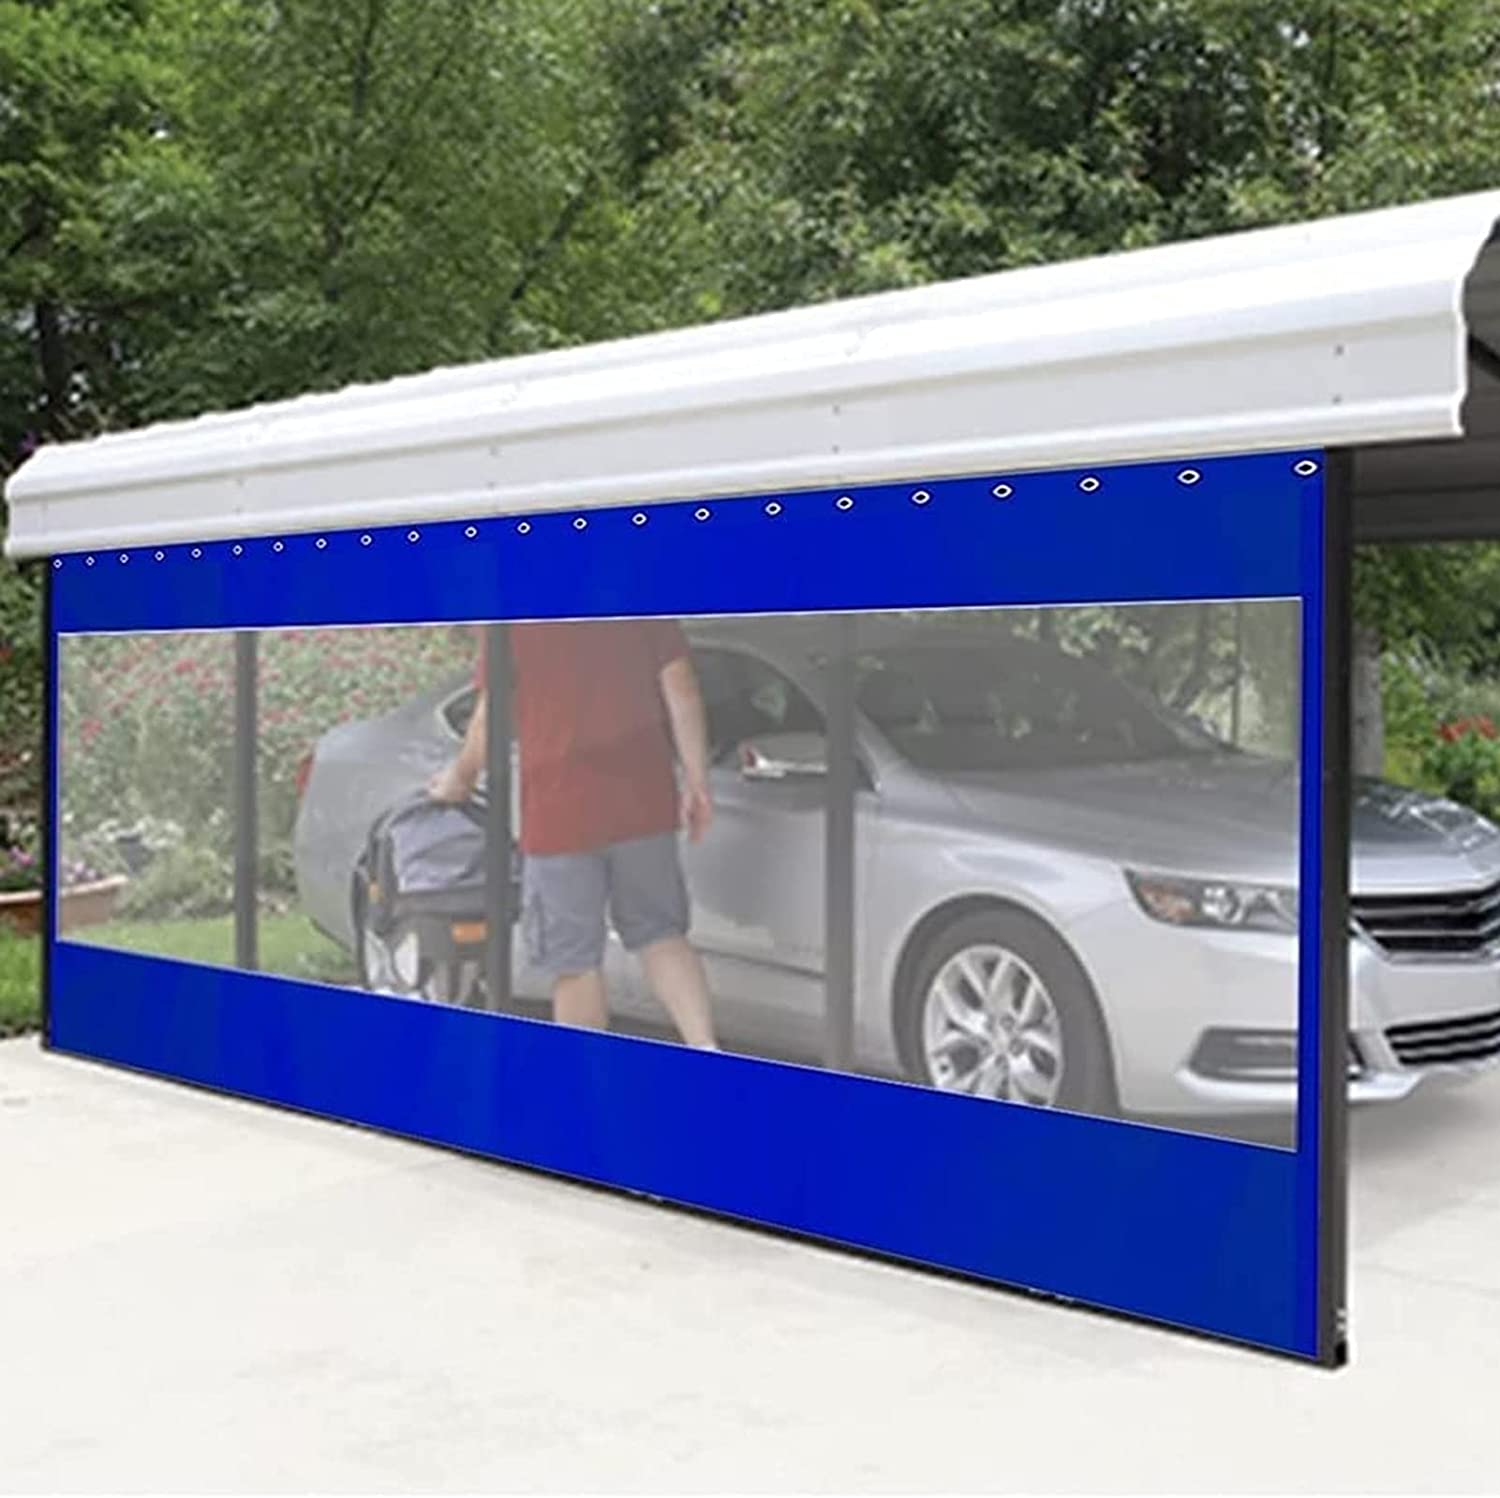 Tarpaulin Outdoor Carport Tent Side New color New life with Panel Grommets Blue Wa